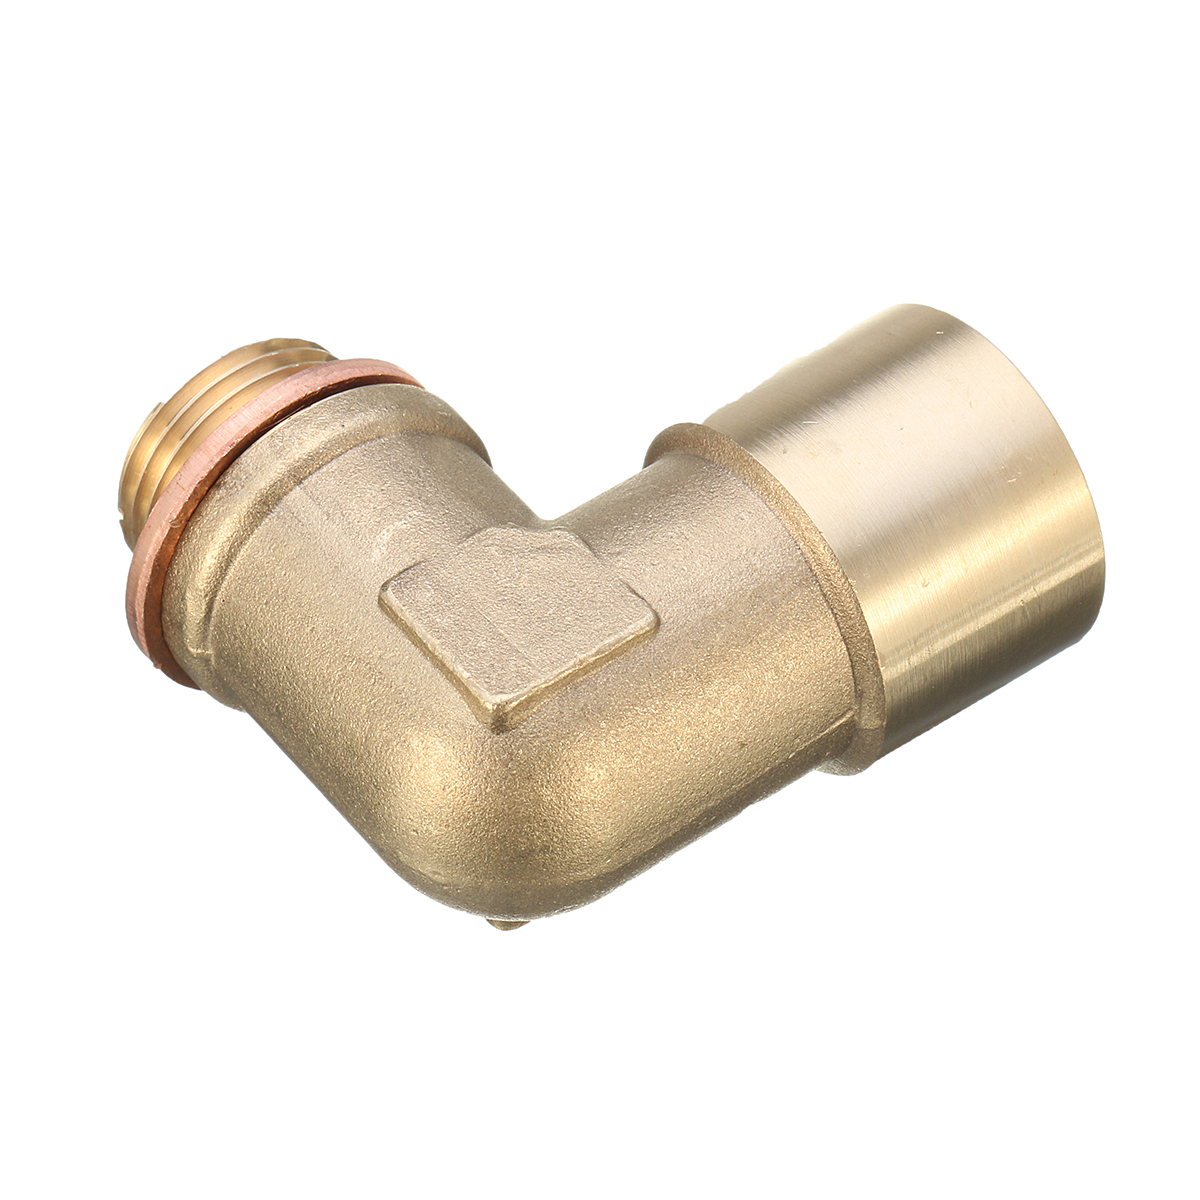 M18X1.5 Angled Lambda O2 Oxygen Sensor Extension Spacer Brass For Decat